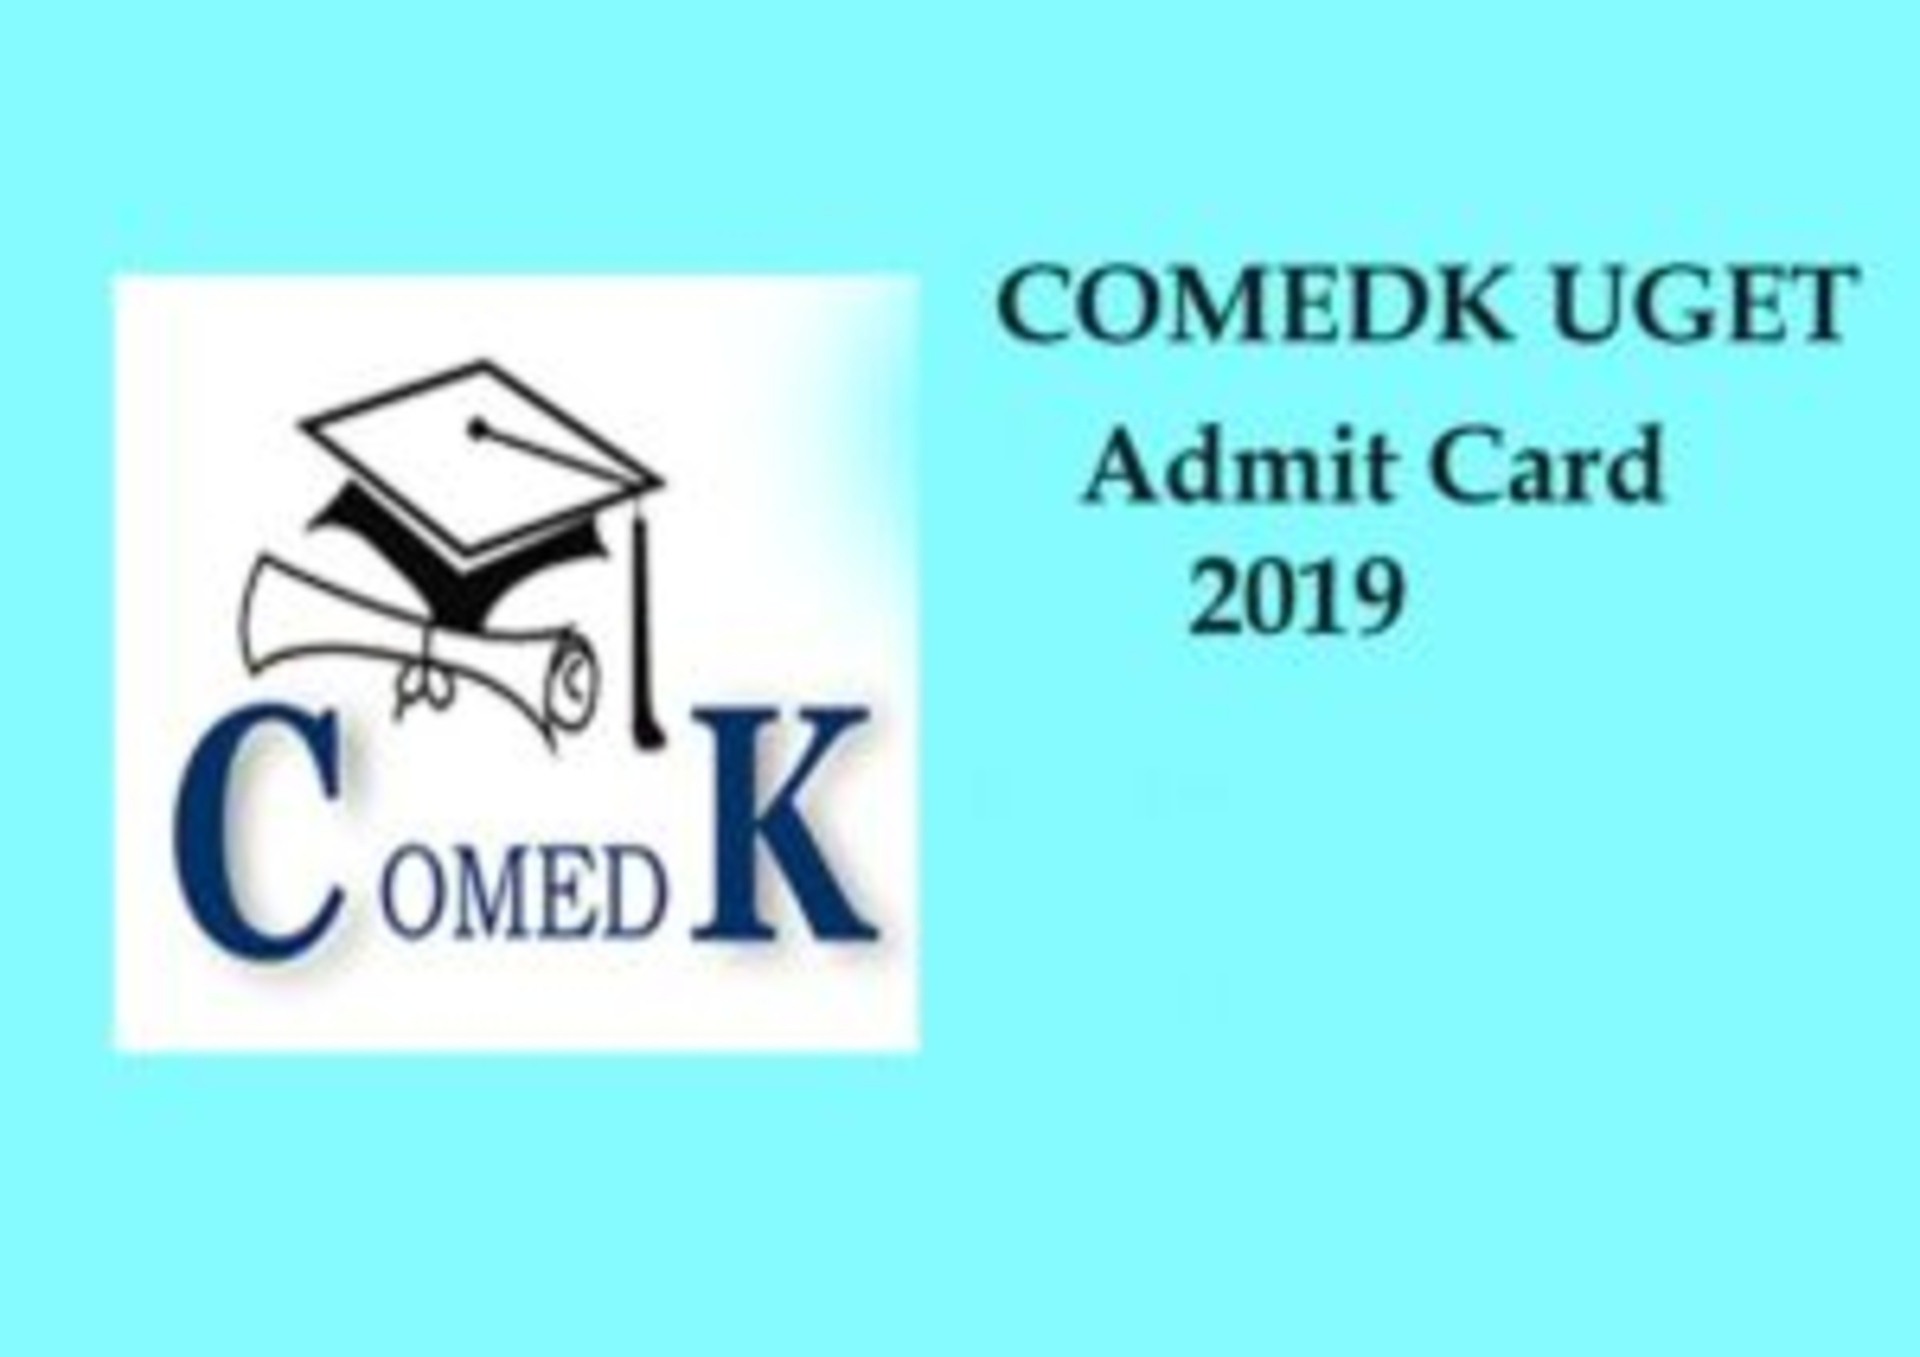 COMEDK Hall Ticket 2019 image